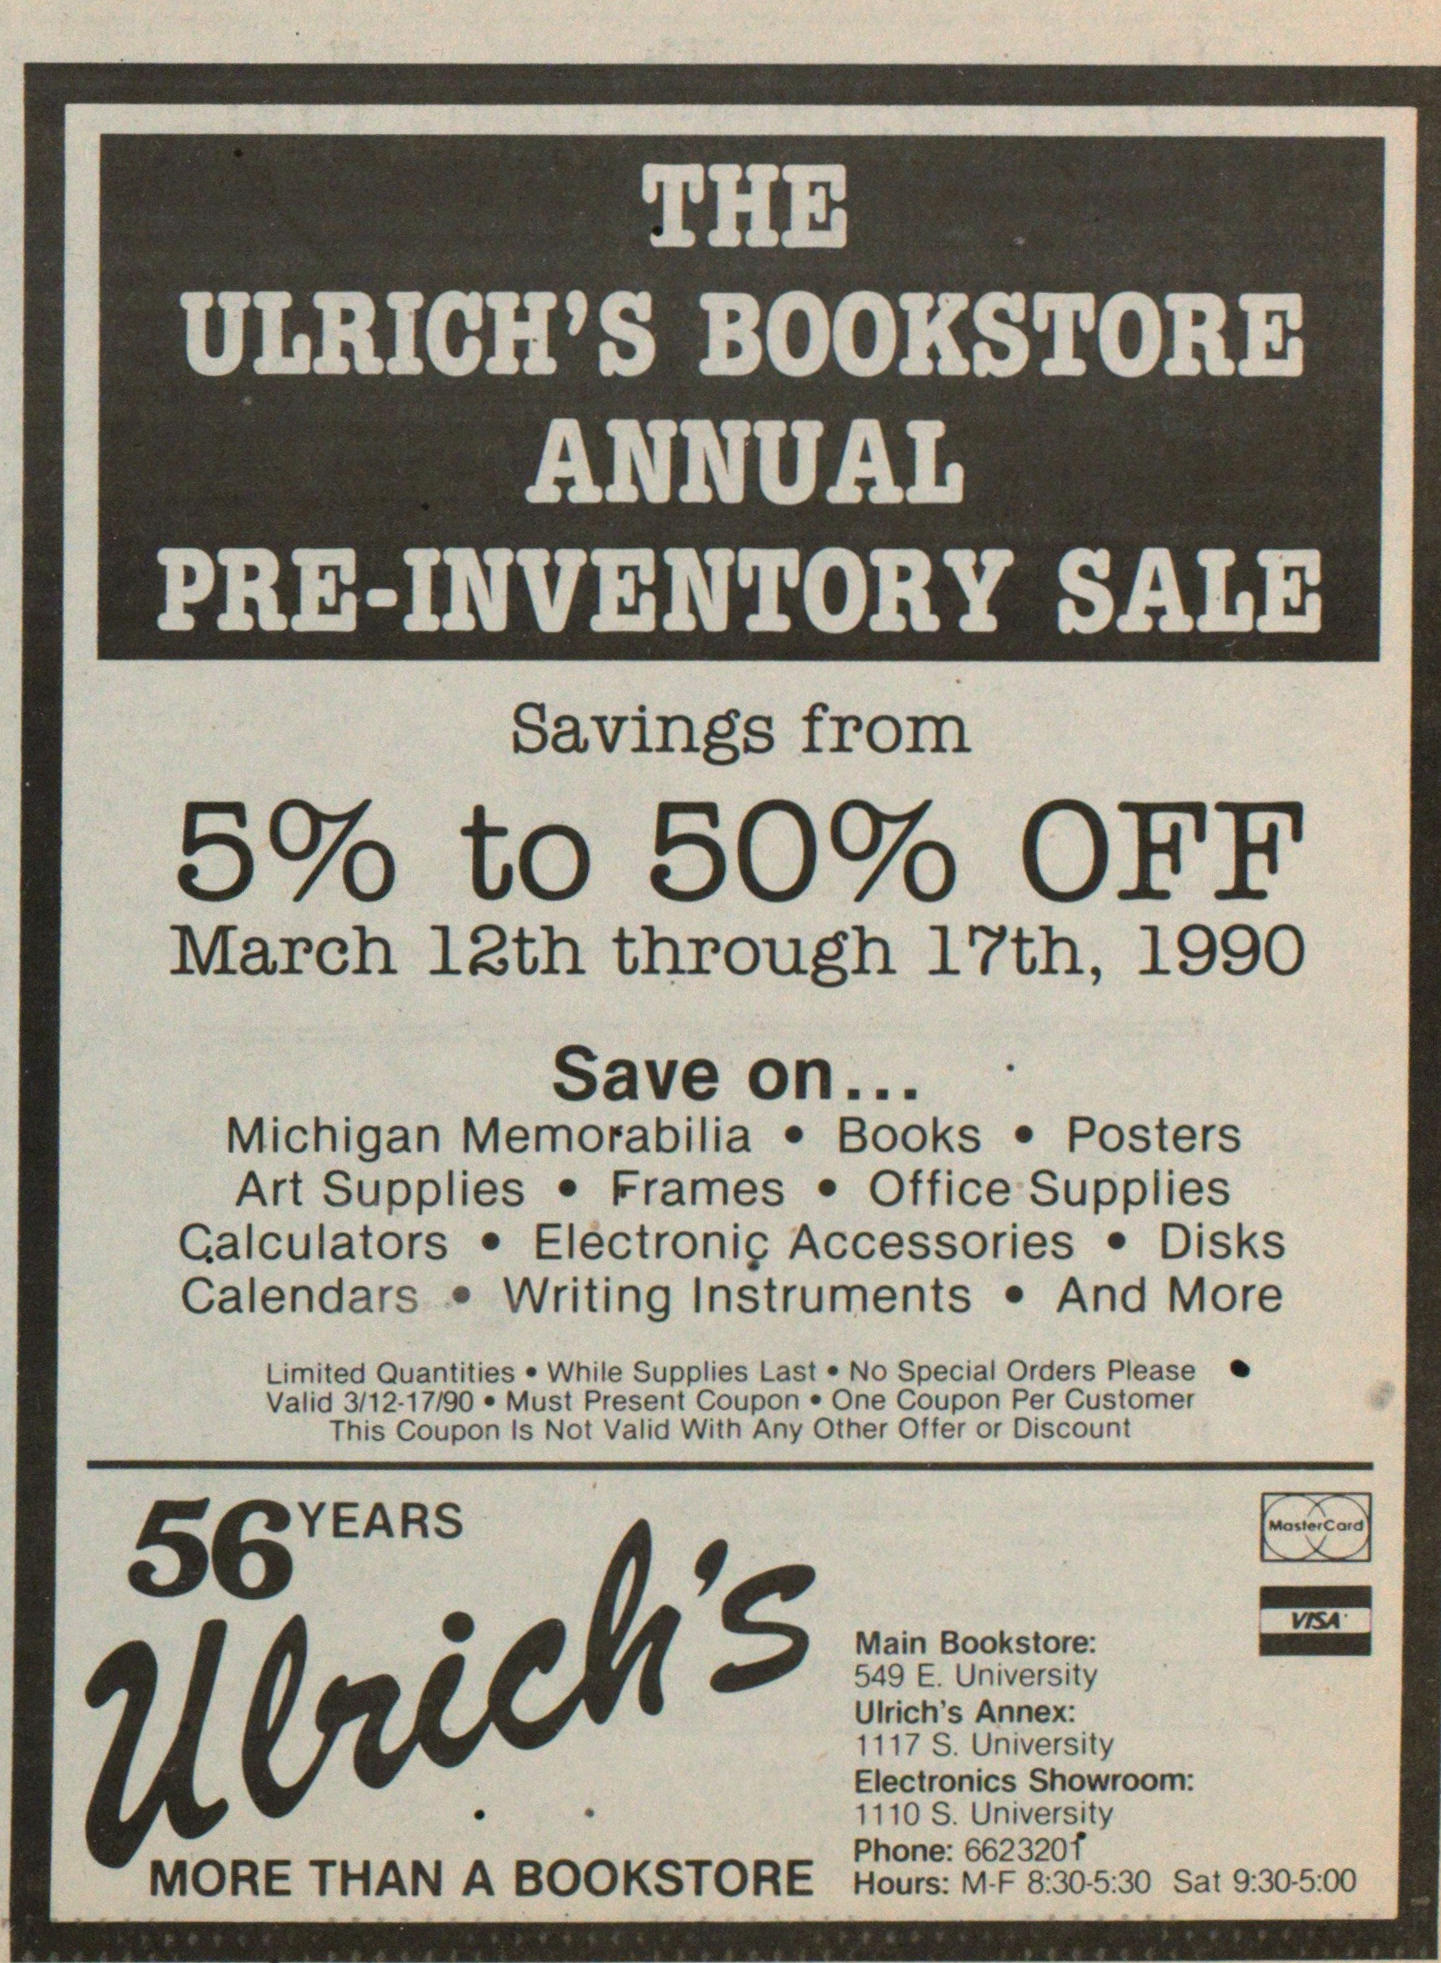 56 Years Ulrich's More Than A Bookstore image